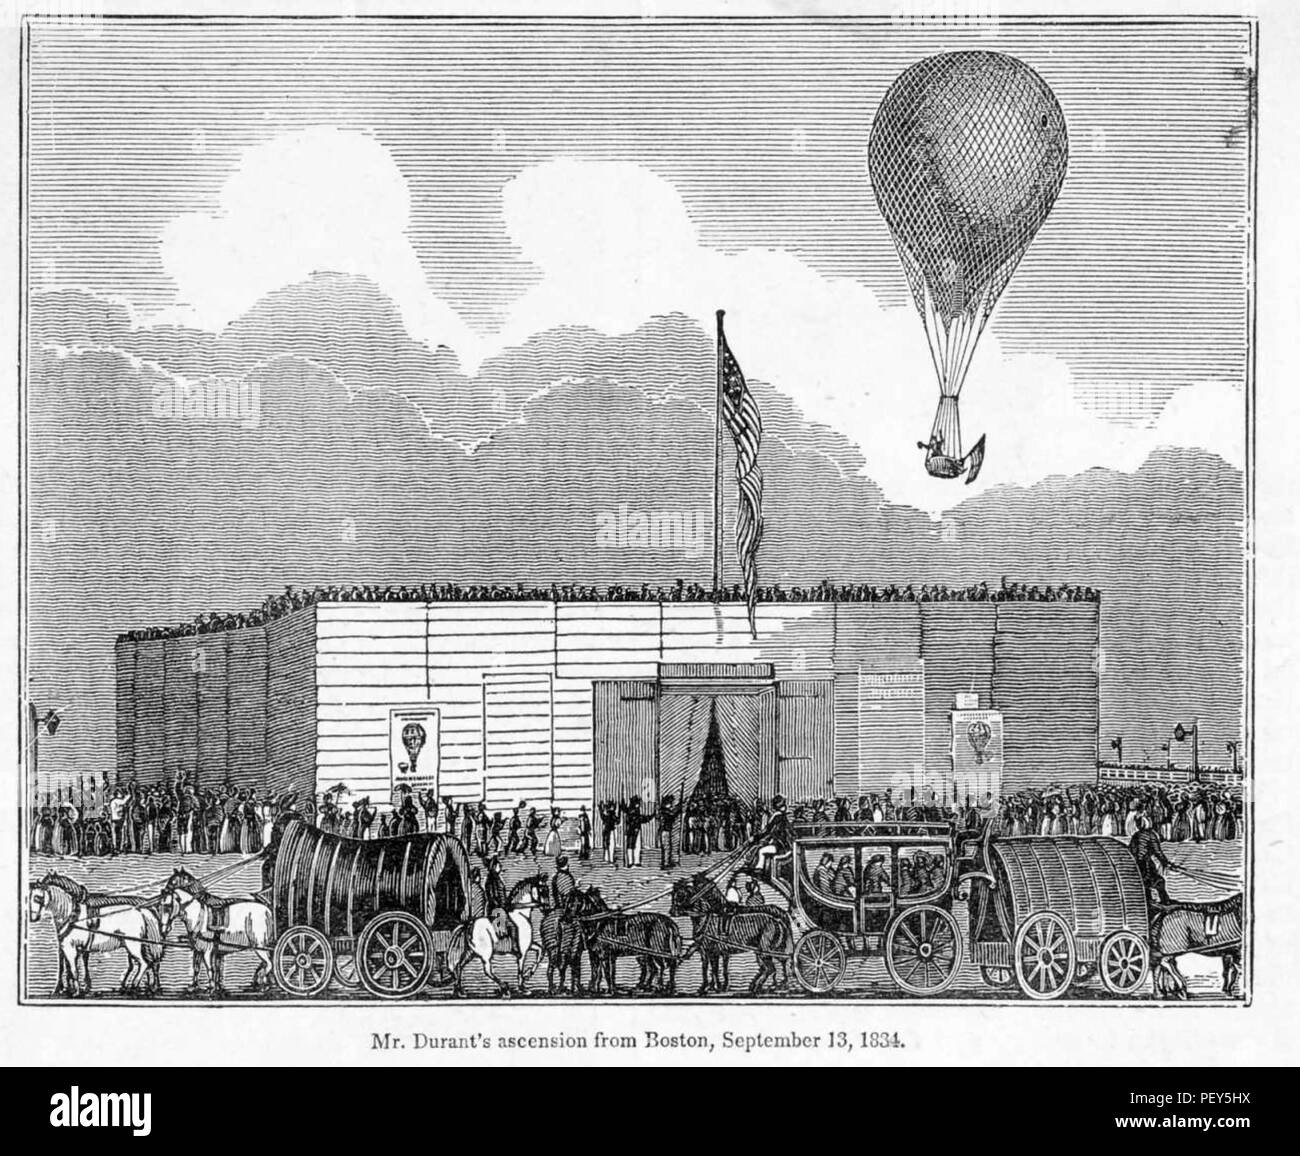 CHARLES FERSON DURANT American balloonist launches from Boston on 13 September 1834 - Stock Image